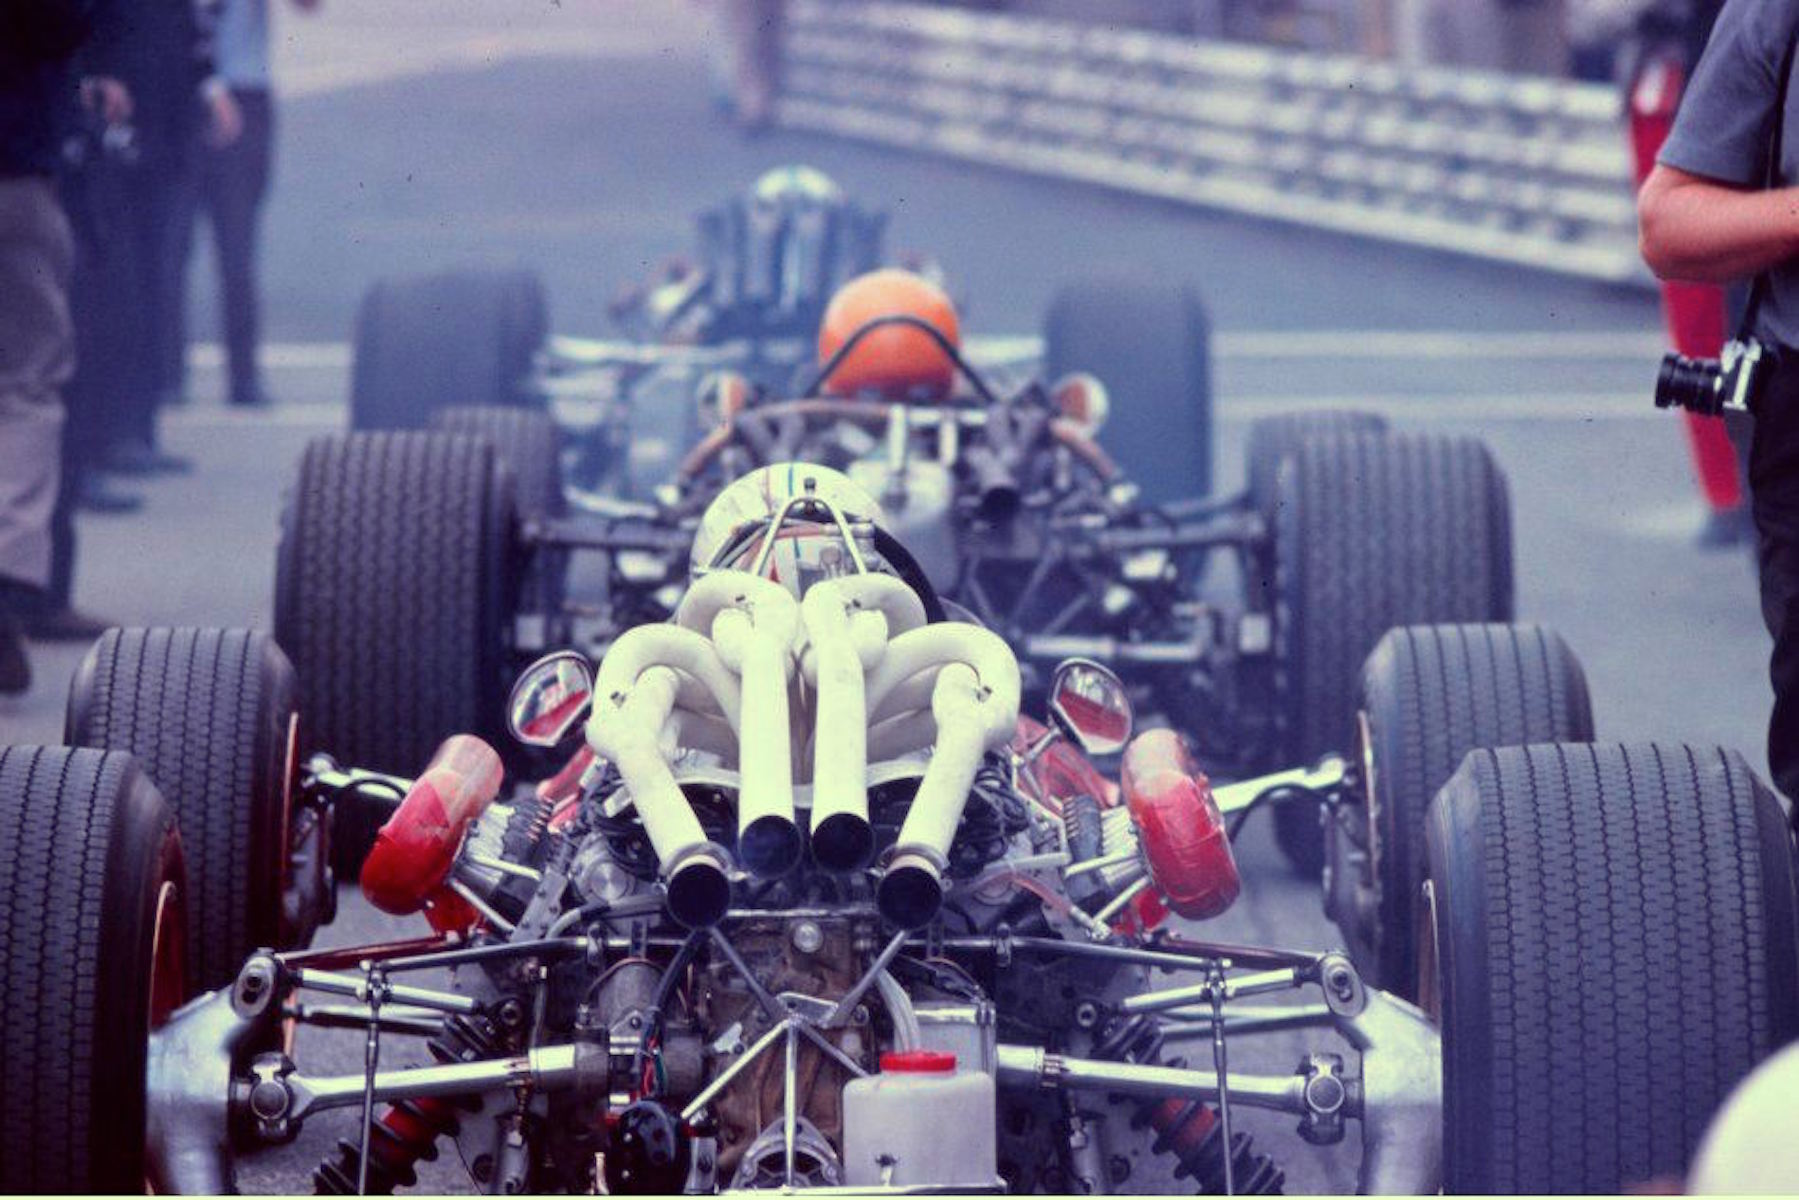 Chris Amon (Ferrari 312/67), Mike Spence (BRM P83), and John Surtees (Honda RA300) ready to leave the pits at Monza | 1967 Italian Grand Prix